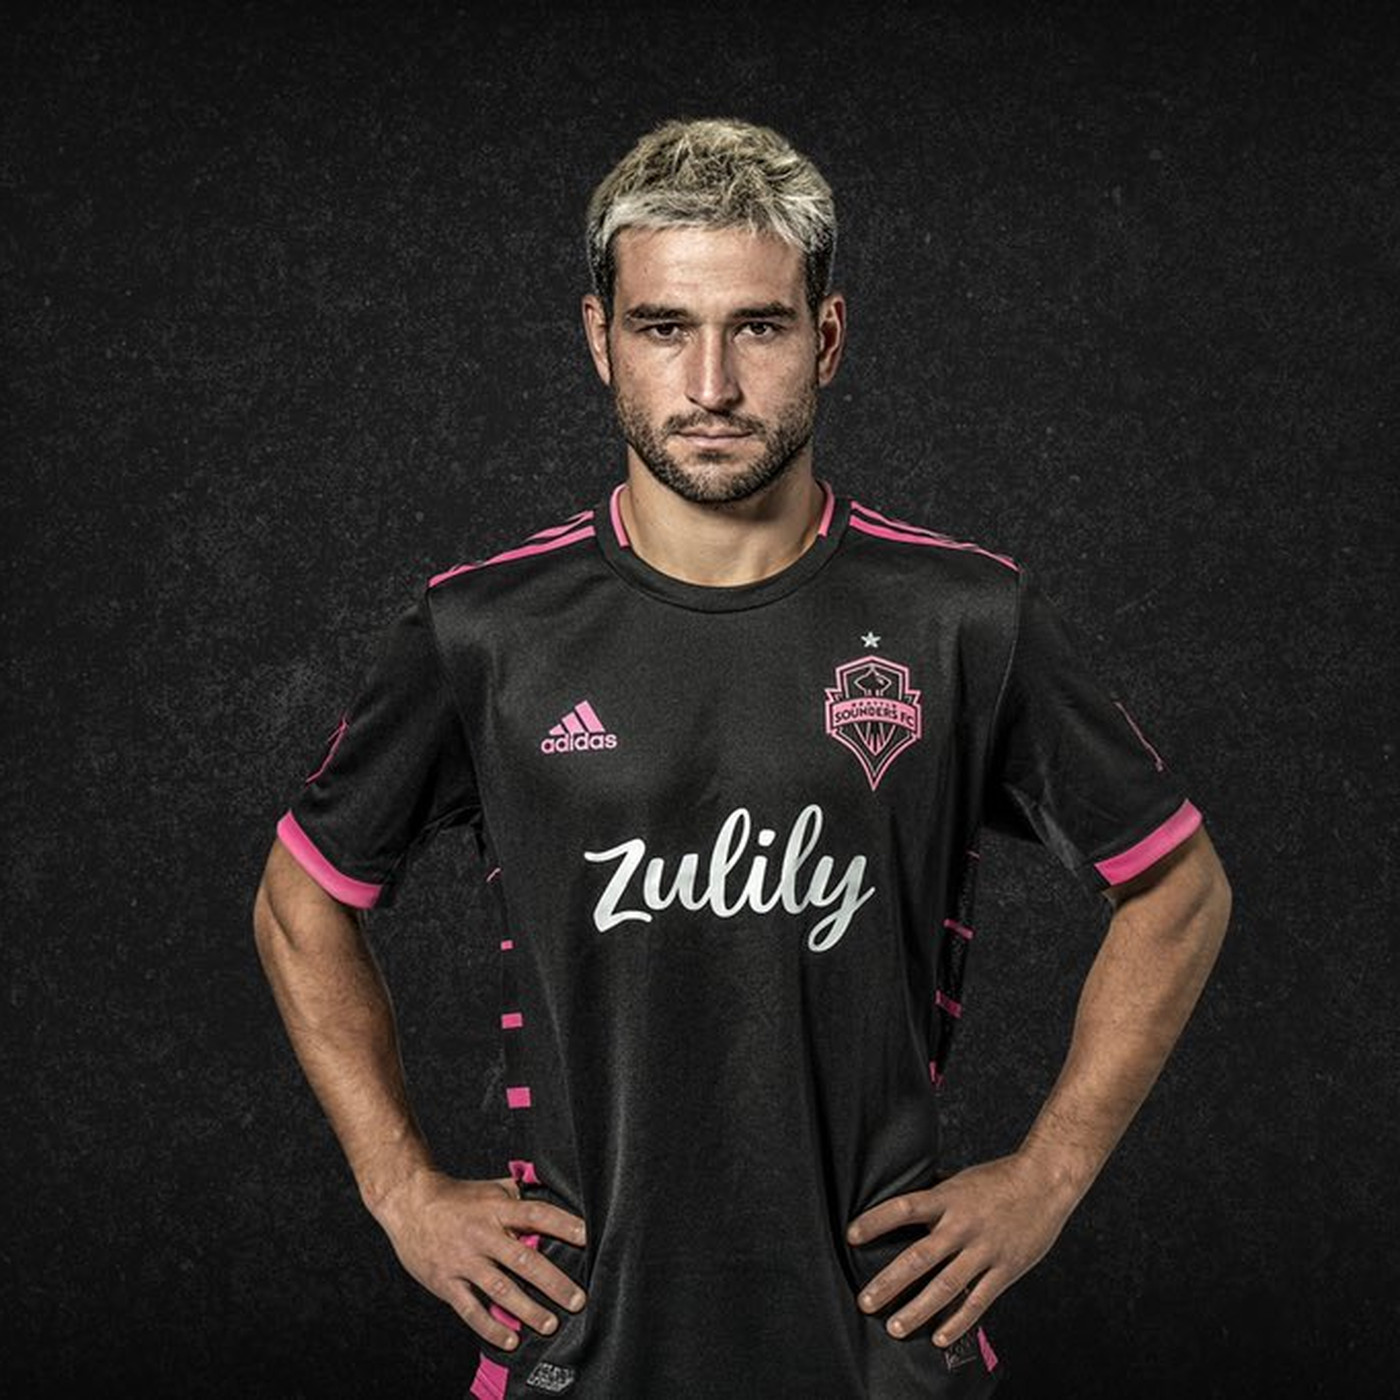 Sounders unveil pink and black 'Nightfall' kits - Sounder At Heart